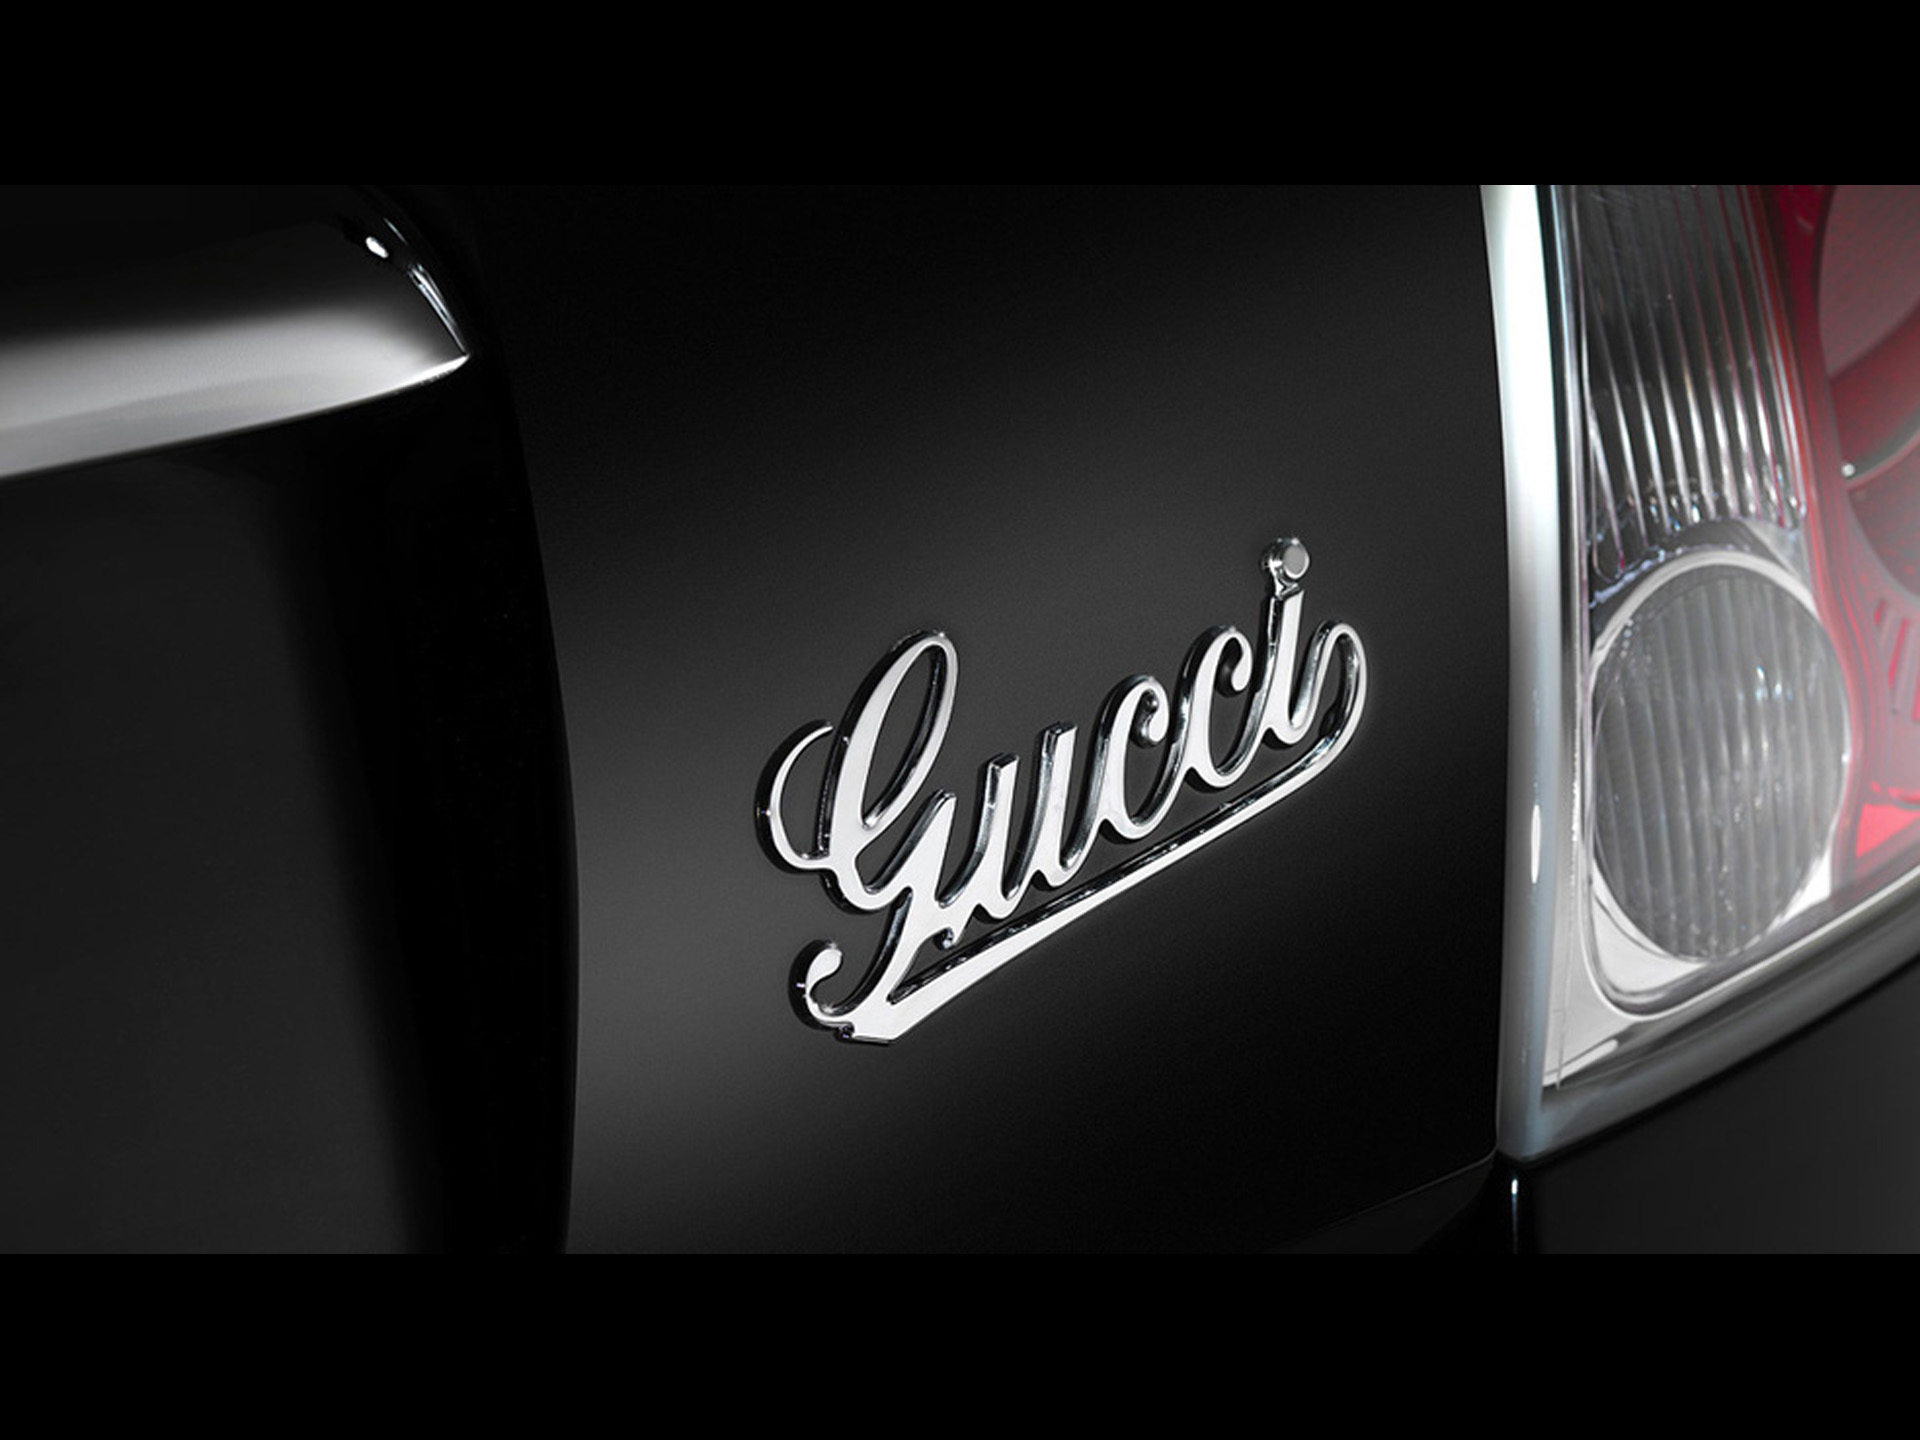 2011 Fiat 500 by Gucci   Gucci 2   1920x1440   Wallpaper 1920x1440